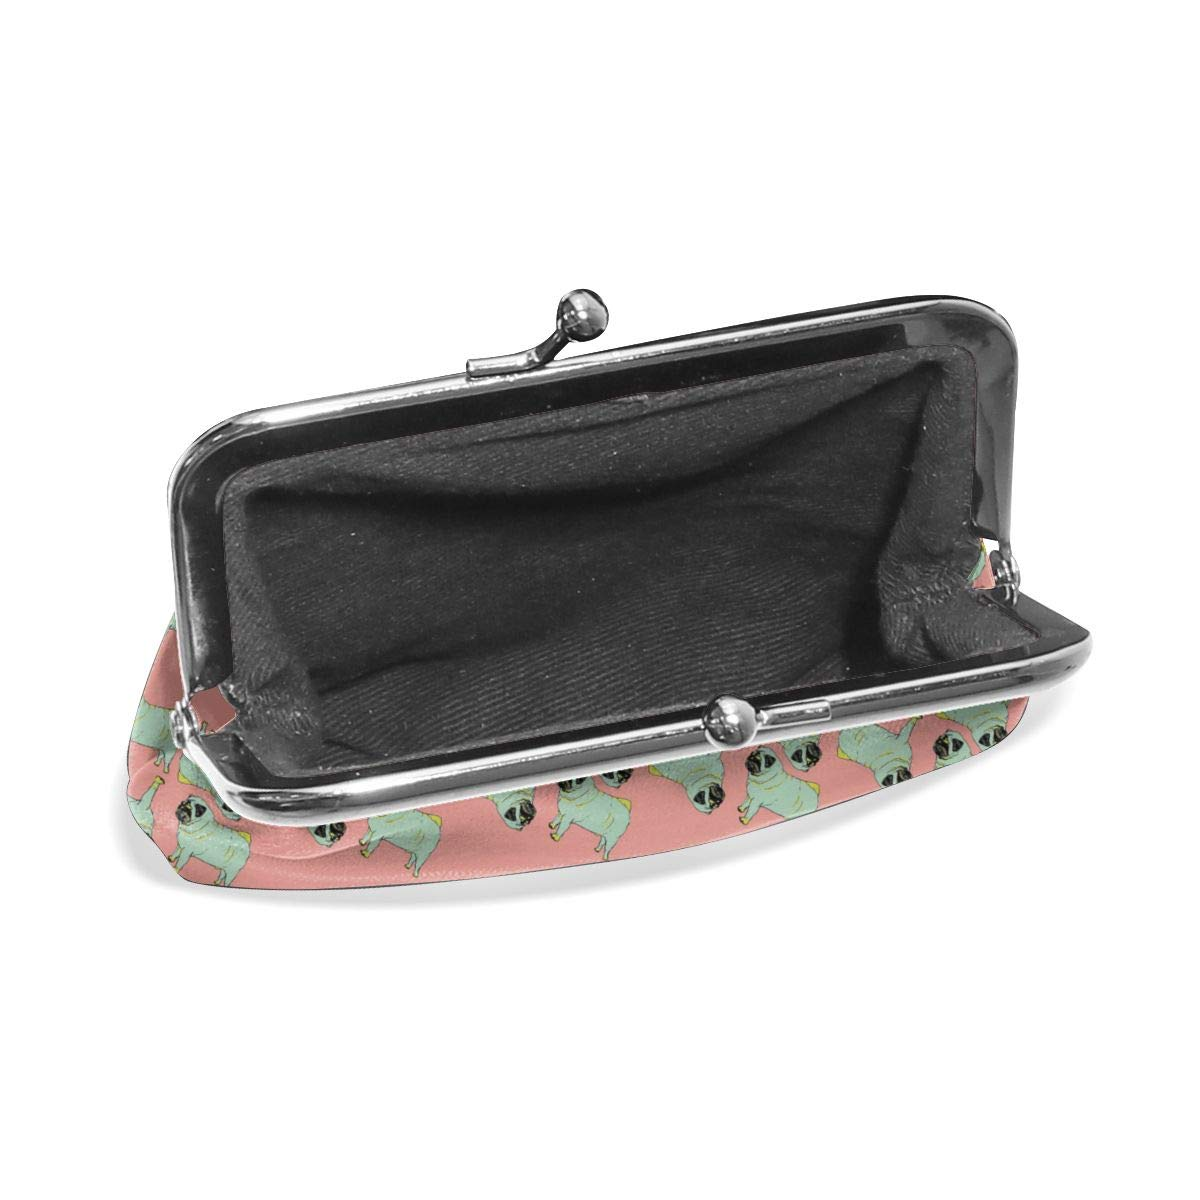 Retro Pugs Credit Cards Buckle Coin Purse For Womens